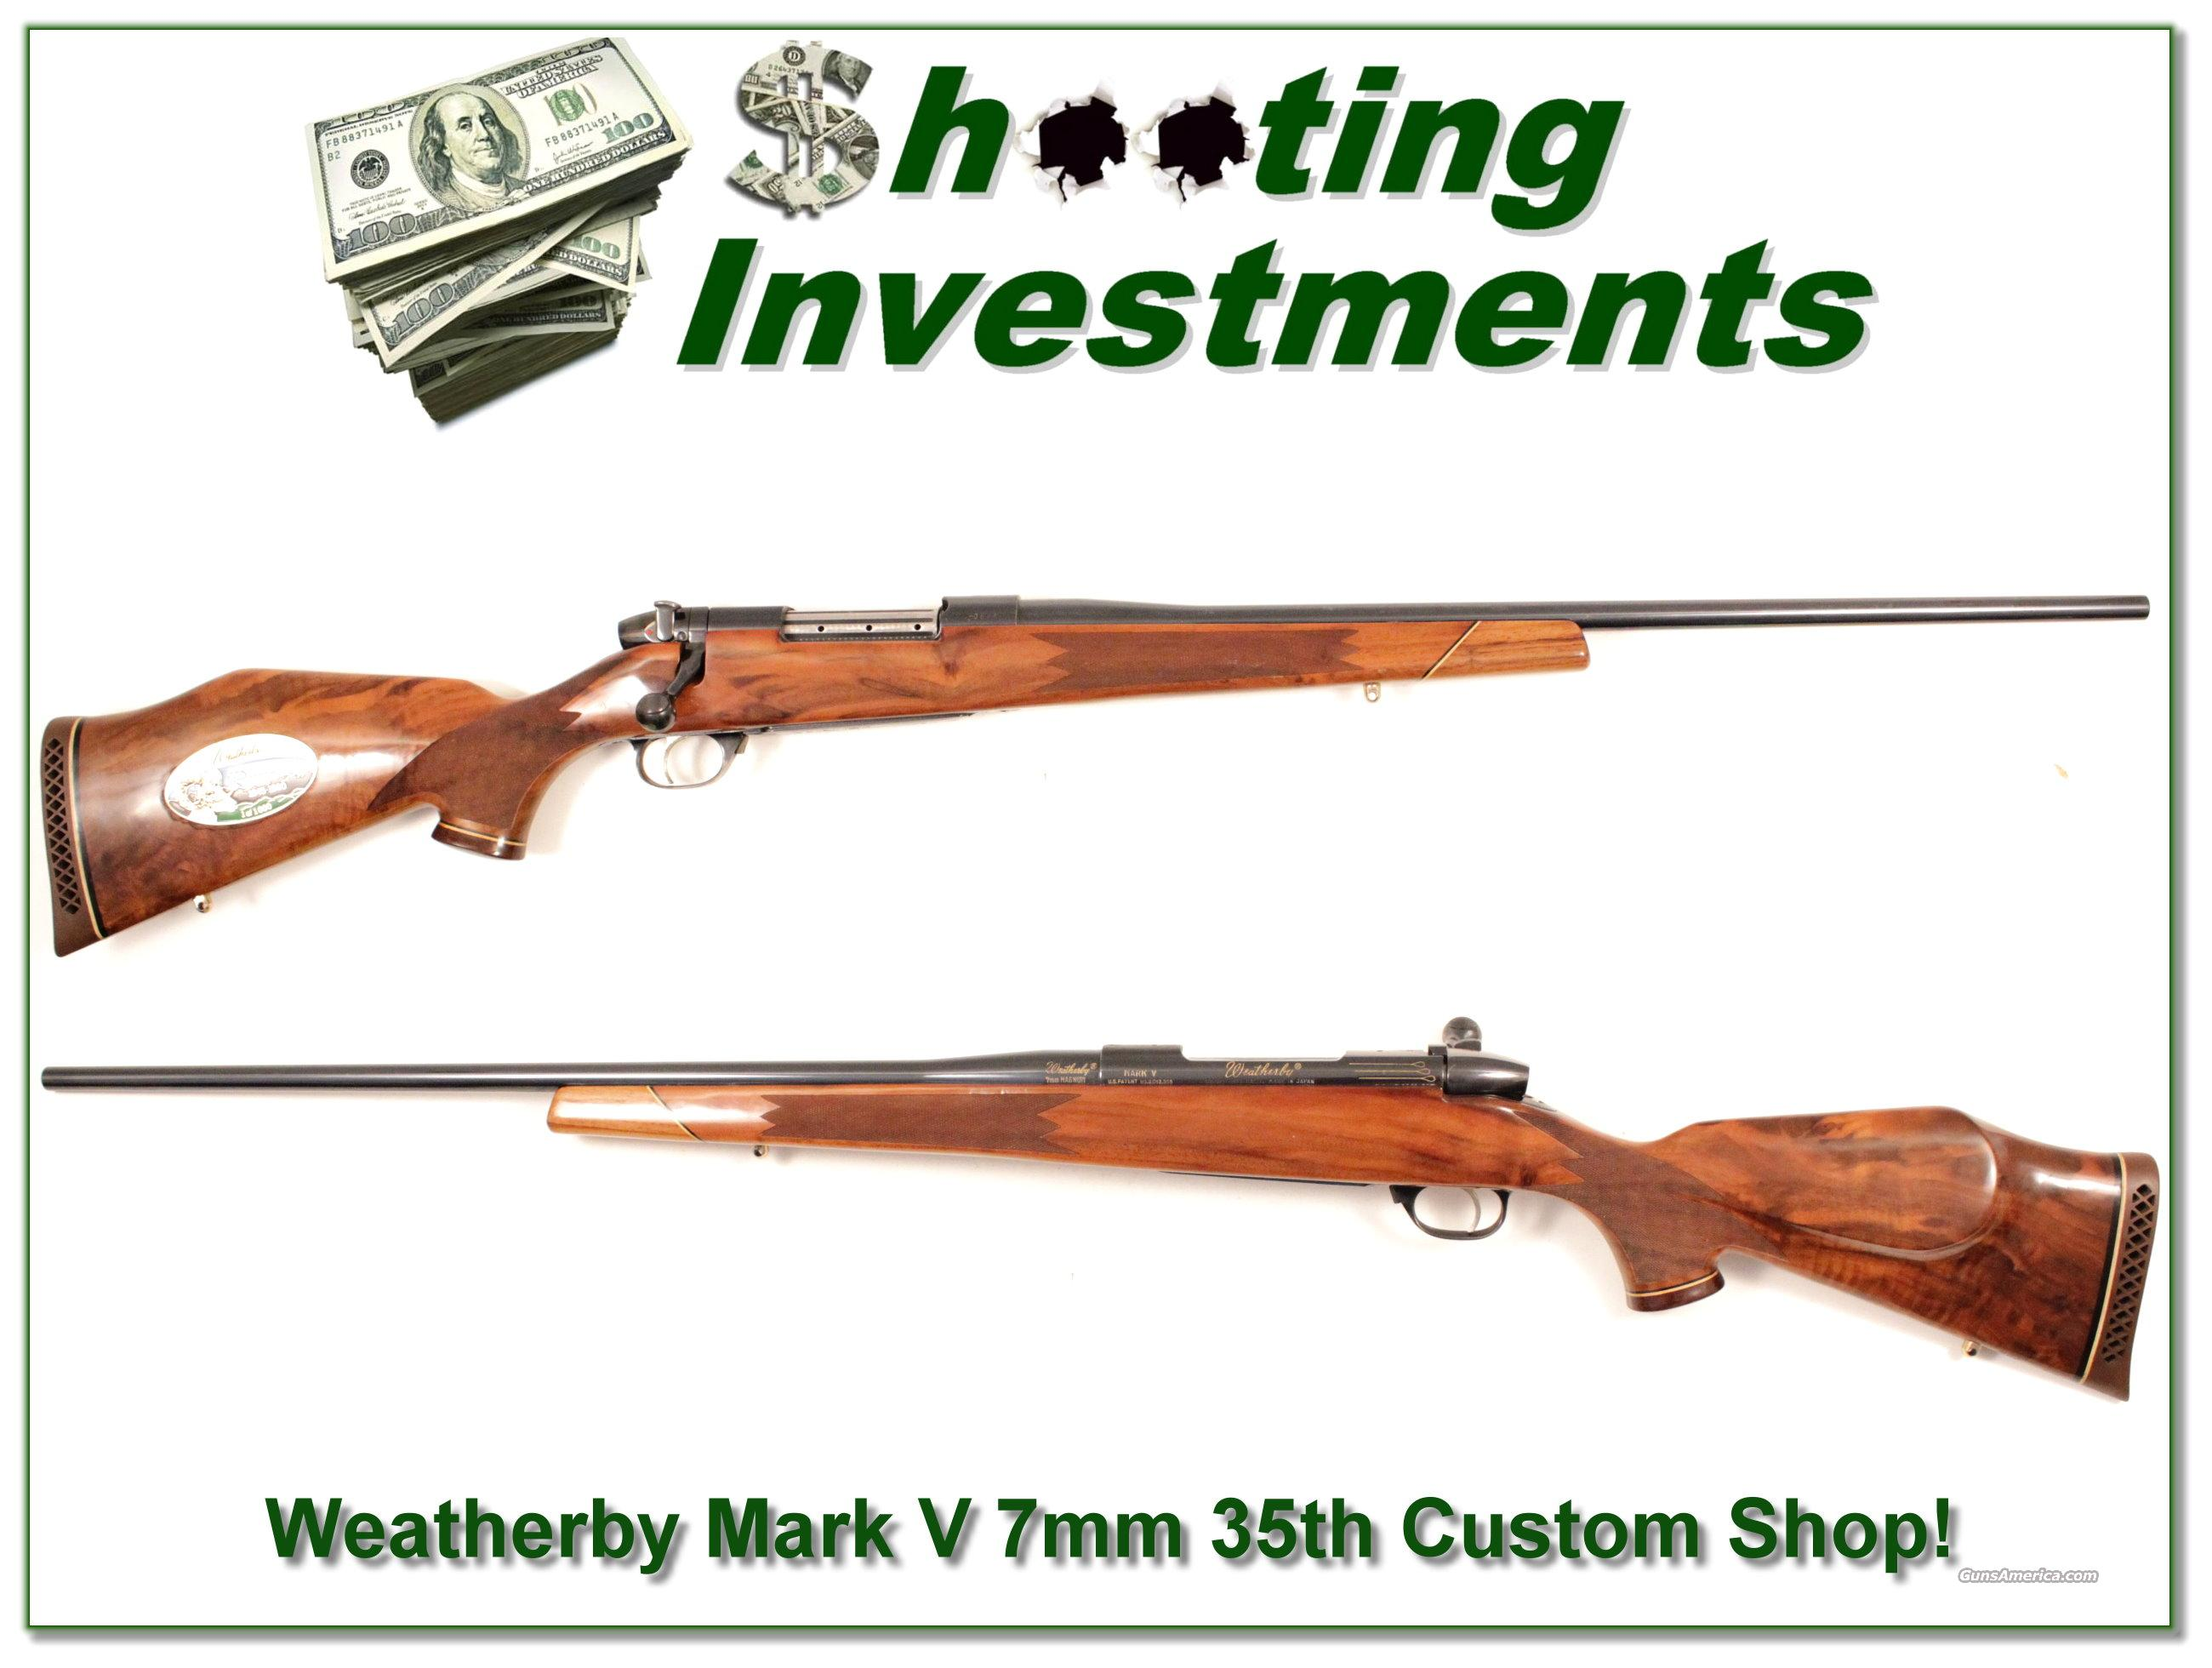 Weatherby Mark V 7mm 35th Anniversary Custom Shop!  Guns > Rifles > Weatherby Rifles > Sporting